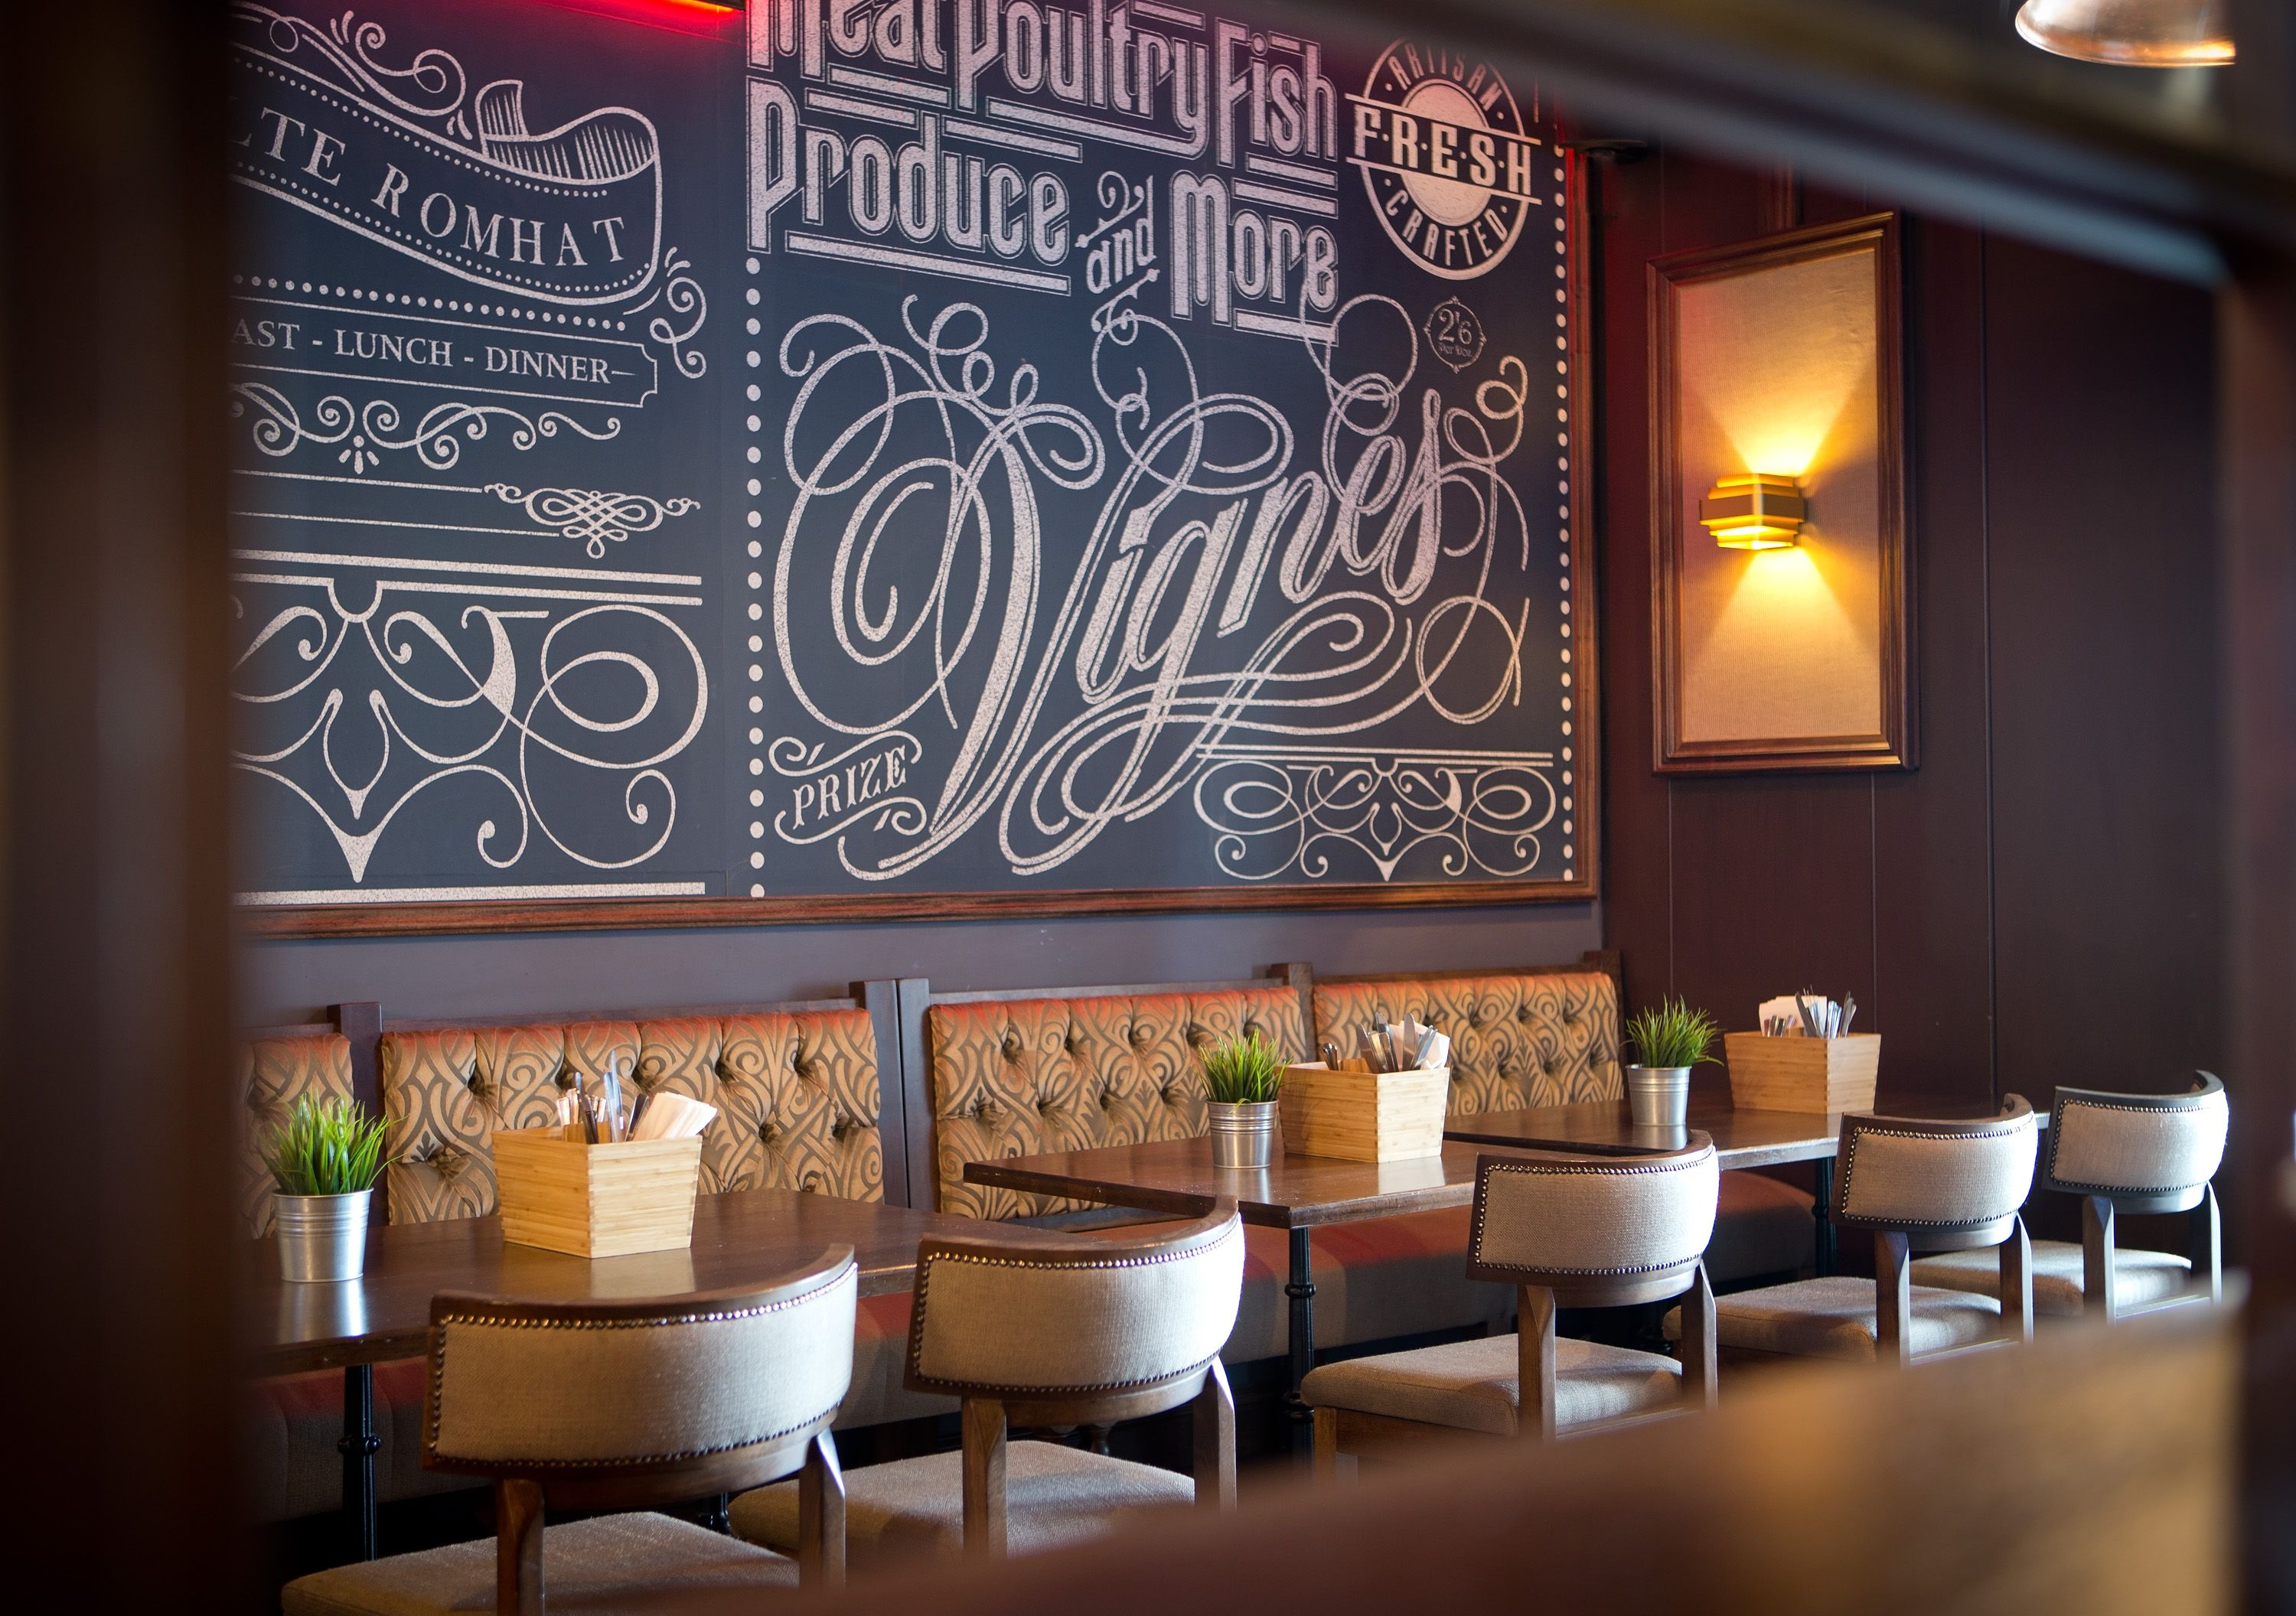 Gastro Design Gastro Pub Interior Design Google Search Pub Pub Interior